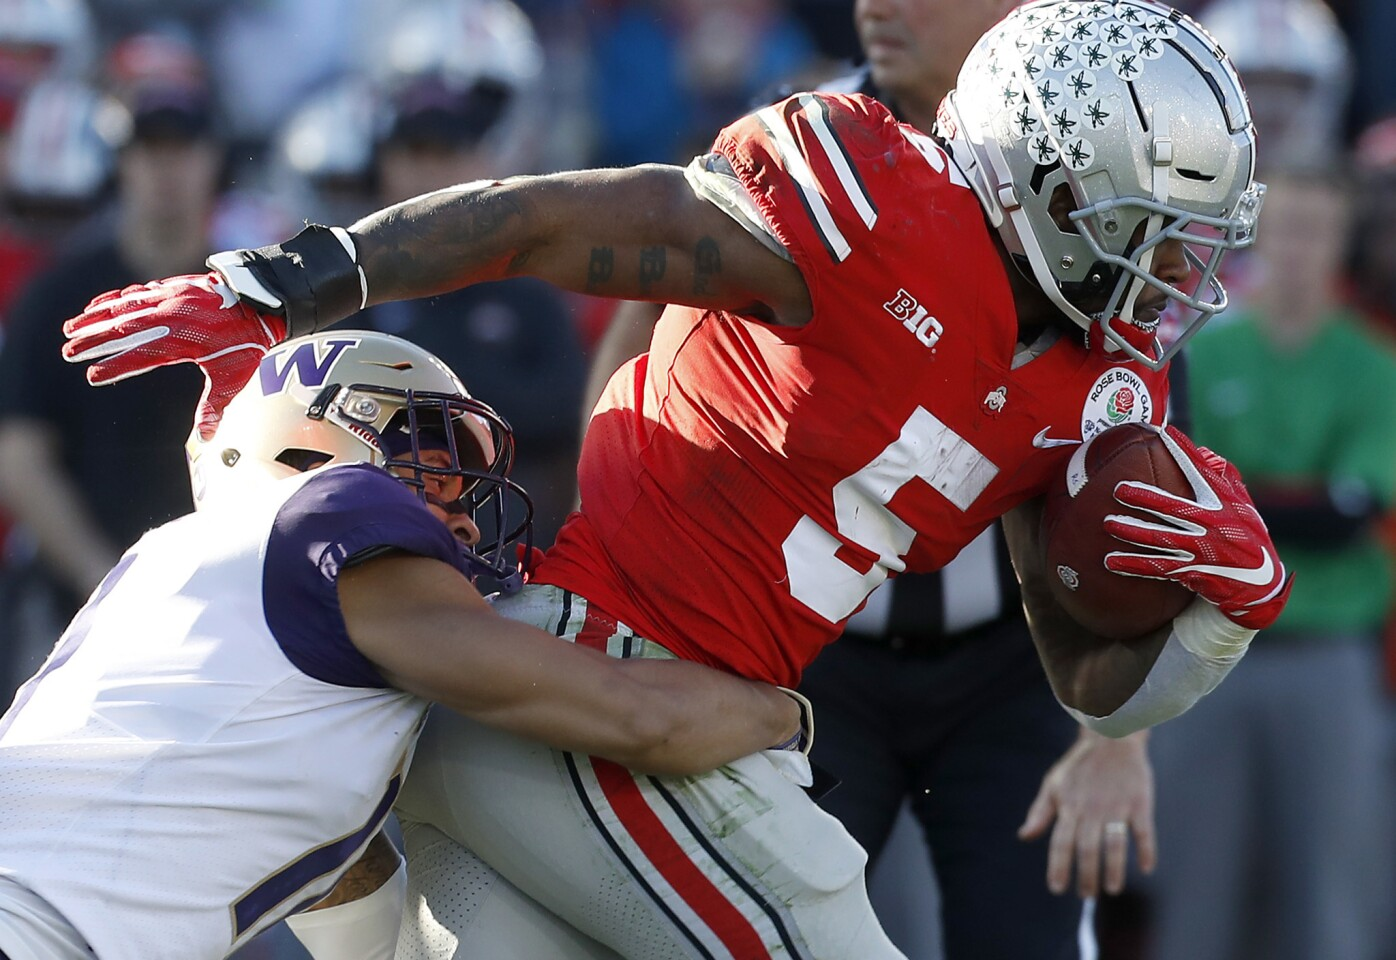 Ohio State running back Mike Weber Jr. drags Washington defensive back Brandon McKinney for a first down on Jan. 1 at the Rose Bowl.